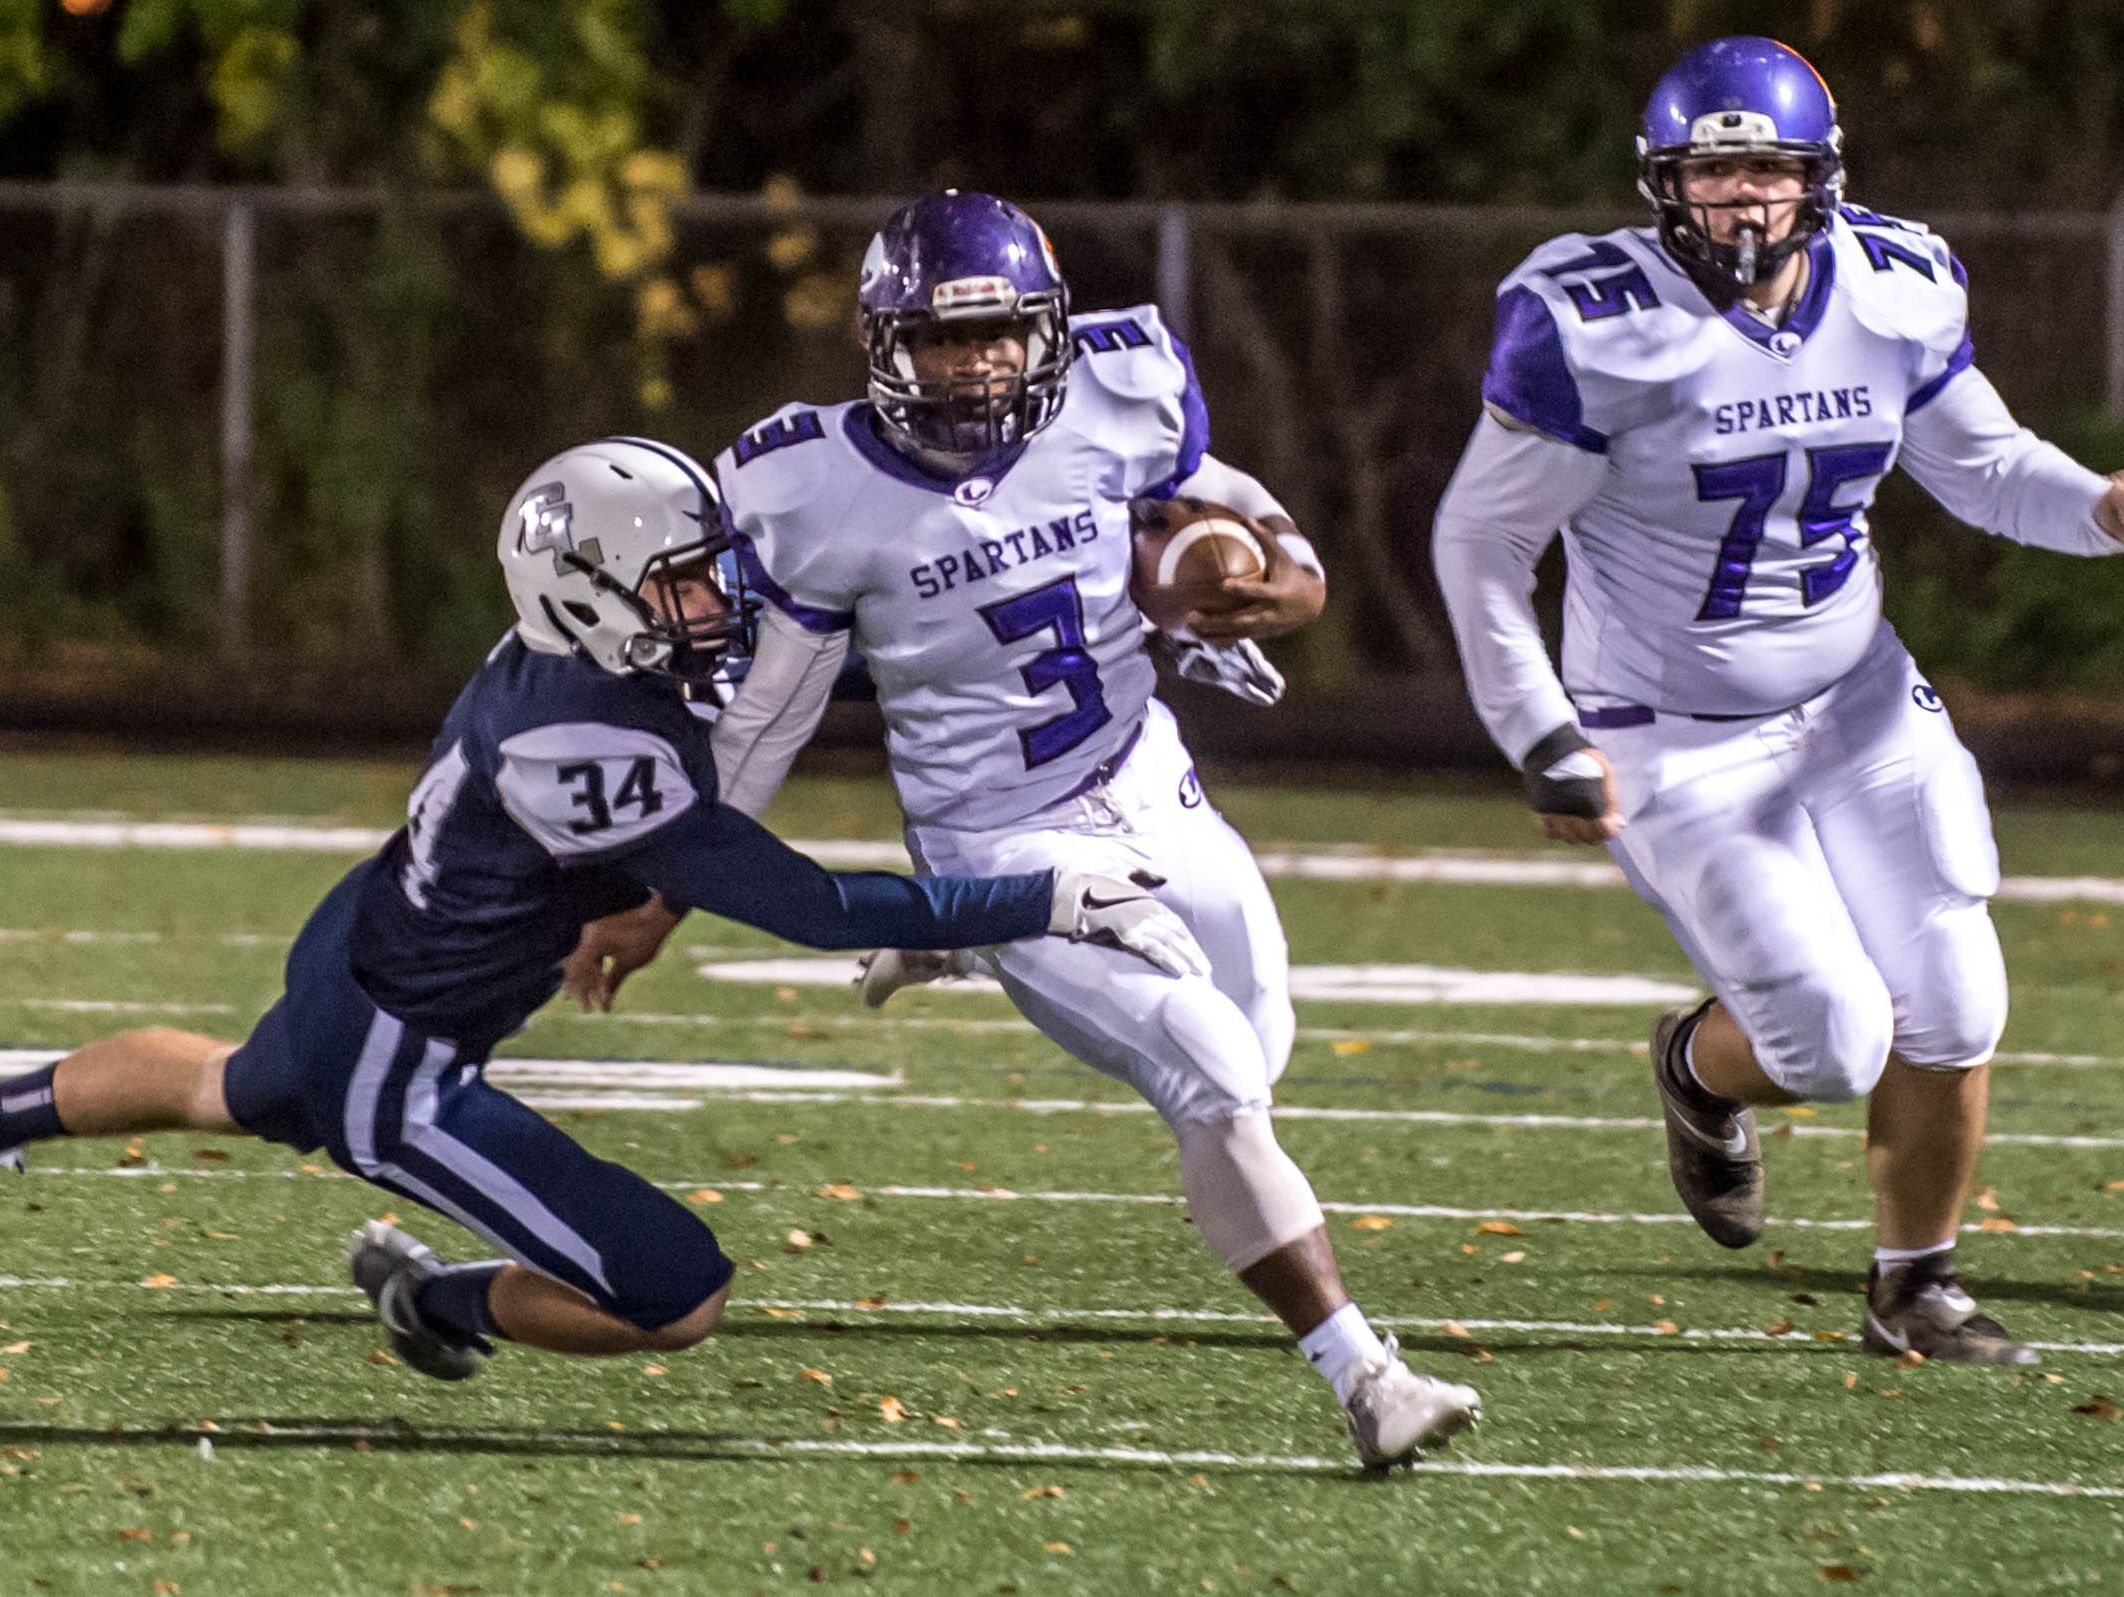 Lakeview's Jay'Vion Settles set a school record with 316 yards rushing in a win over Gull Lake